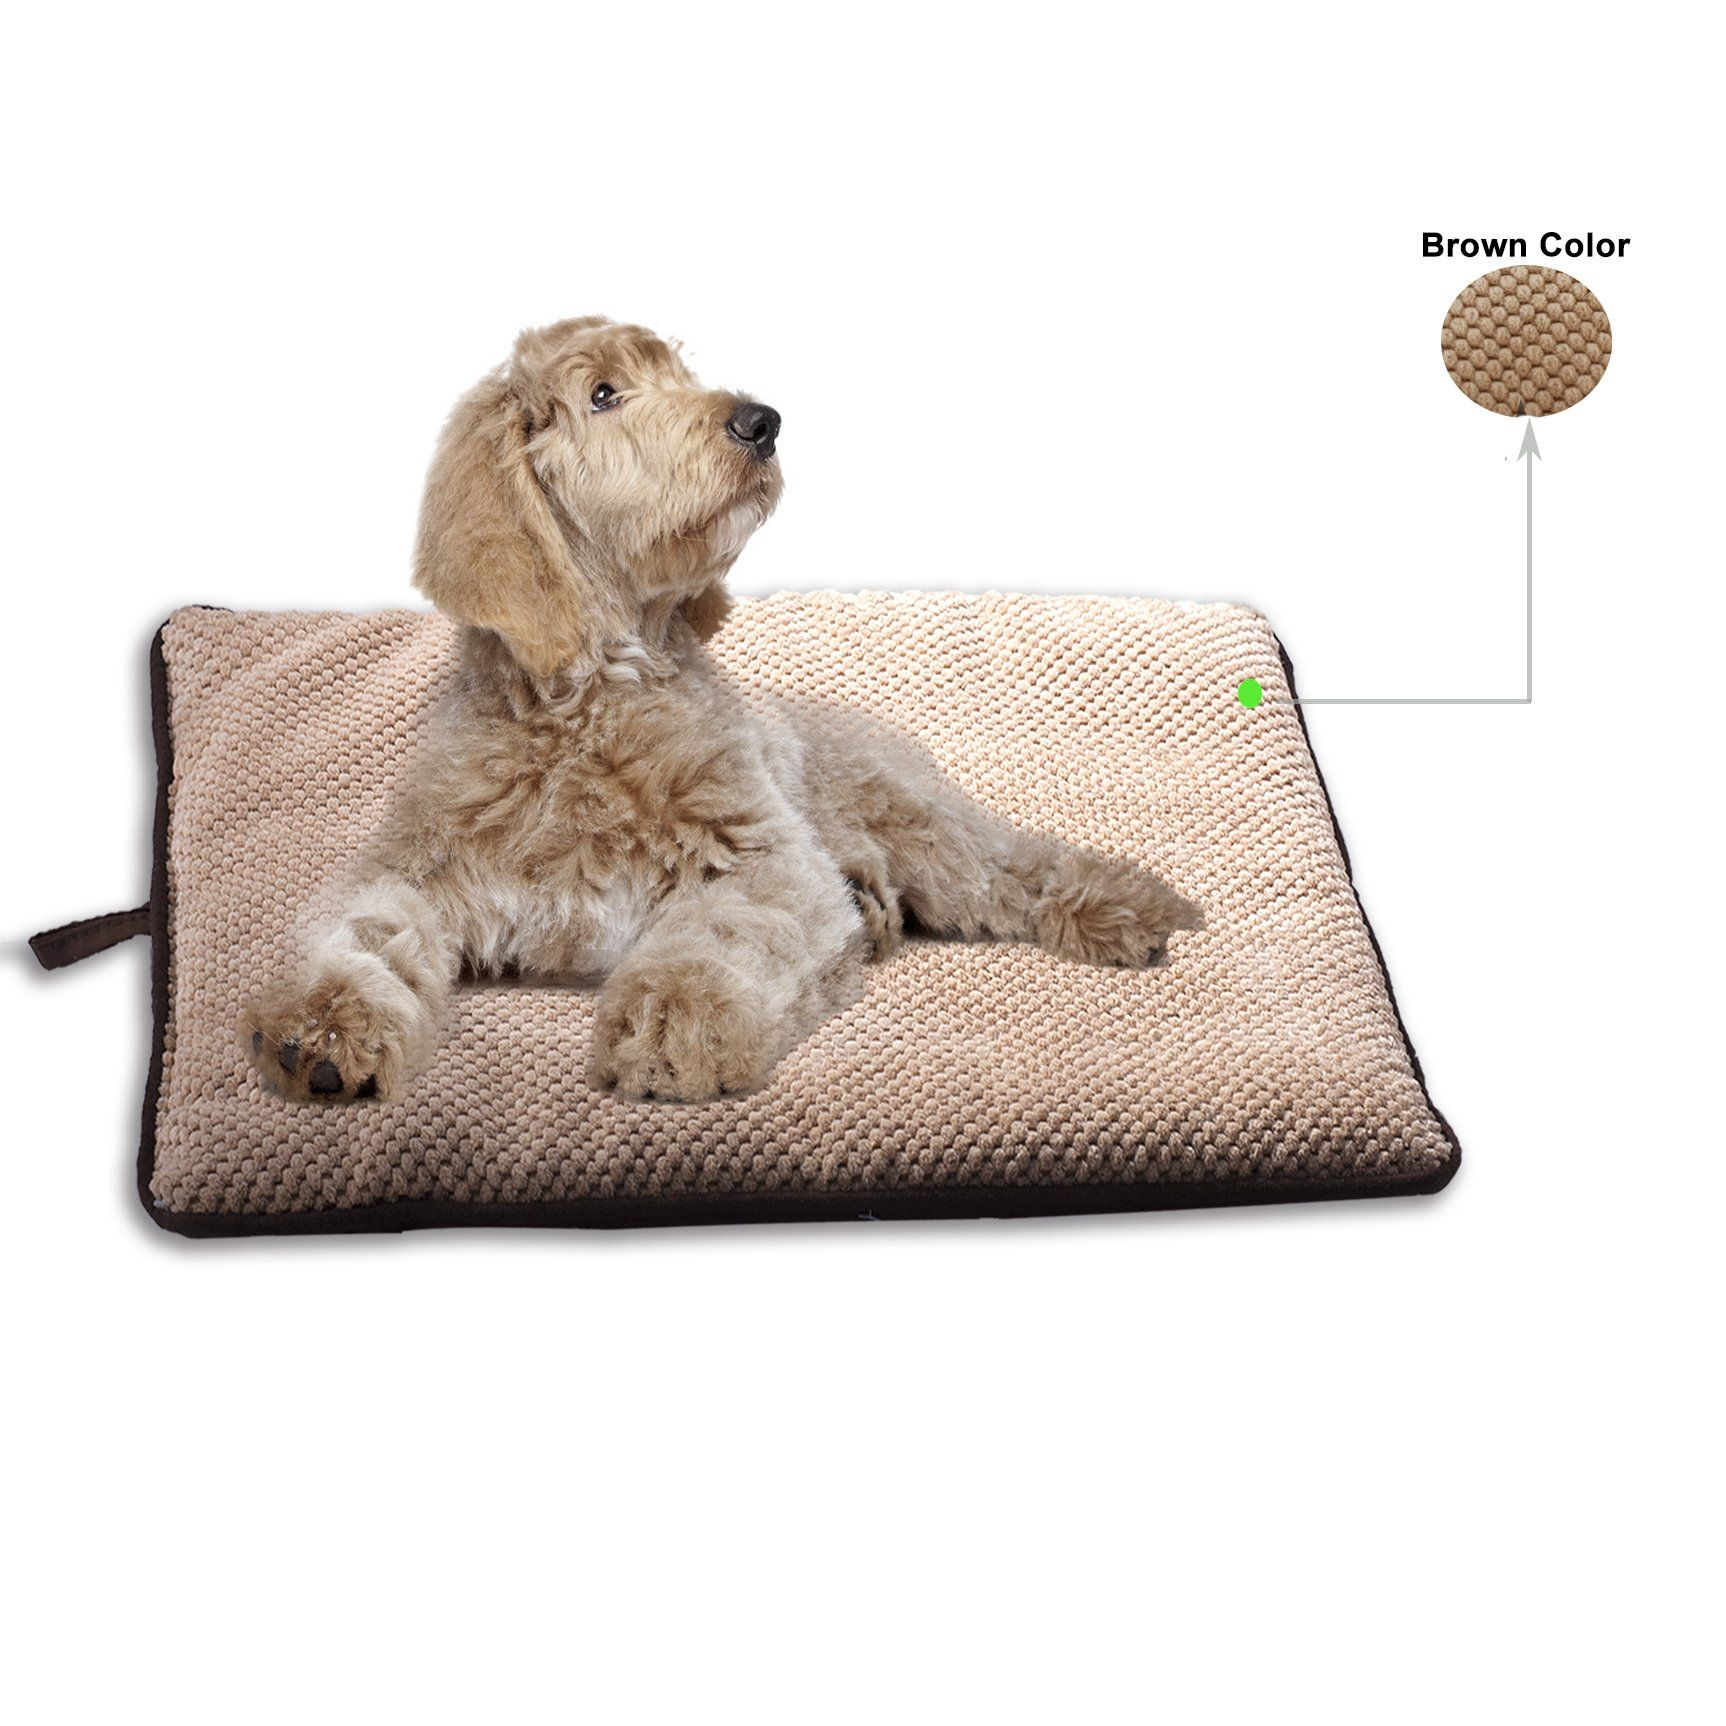 Pawise Breathable Dog Mat Waterproof Teflon Dog Bed Mat Machine Washable Xs 21 6x15 7 Discover More About The Terrific Item At Cat Bed Dog Mat Dog Bed Mat